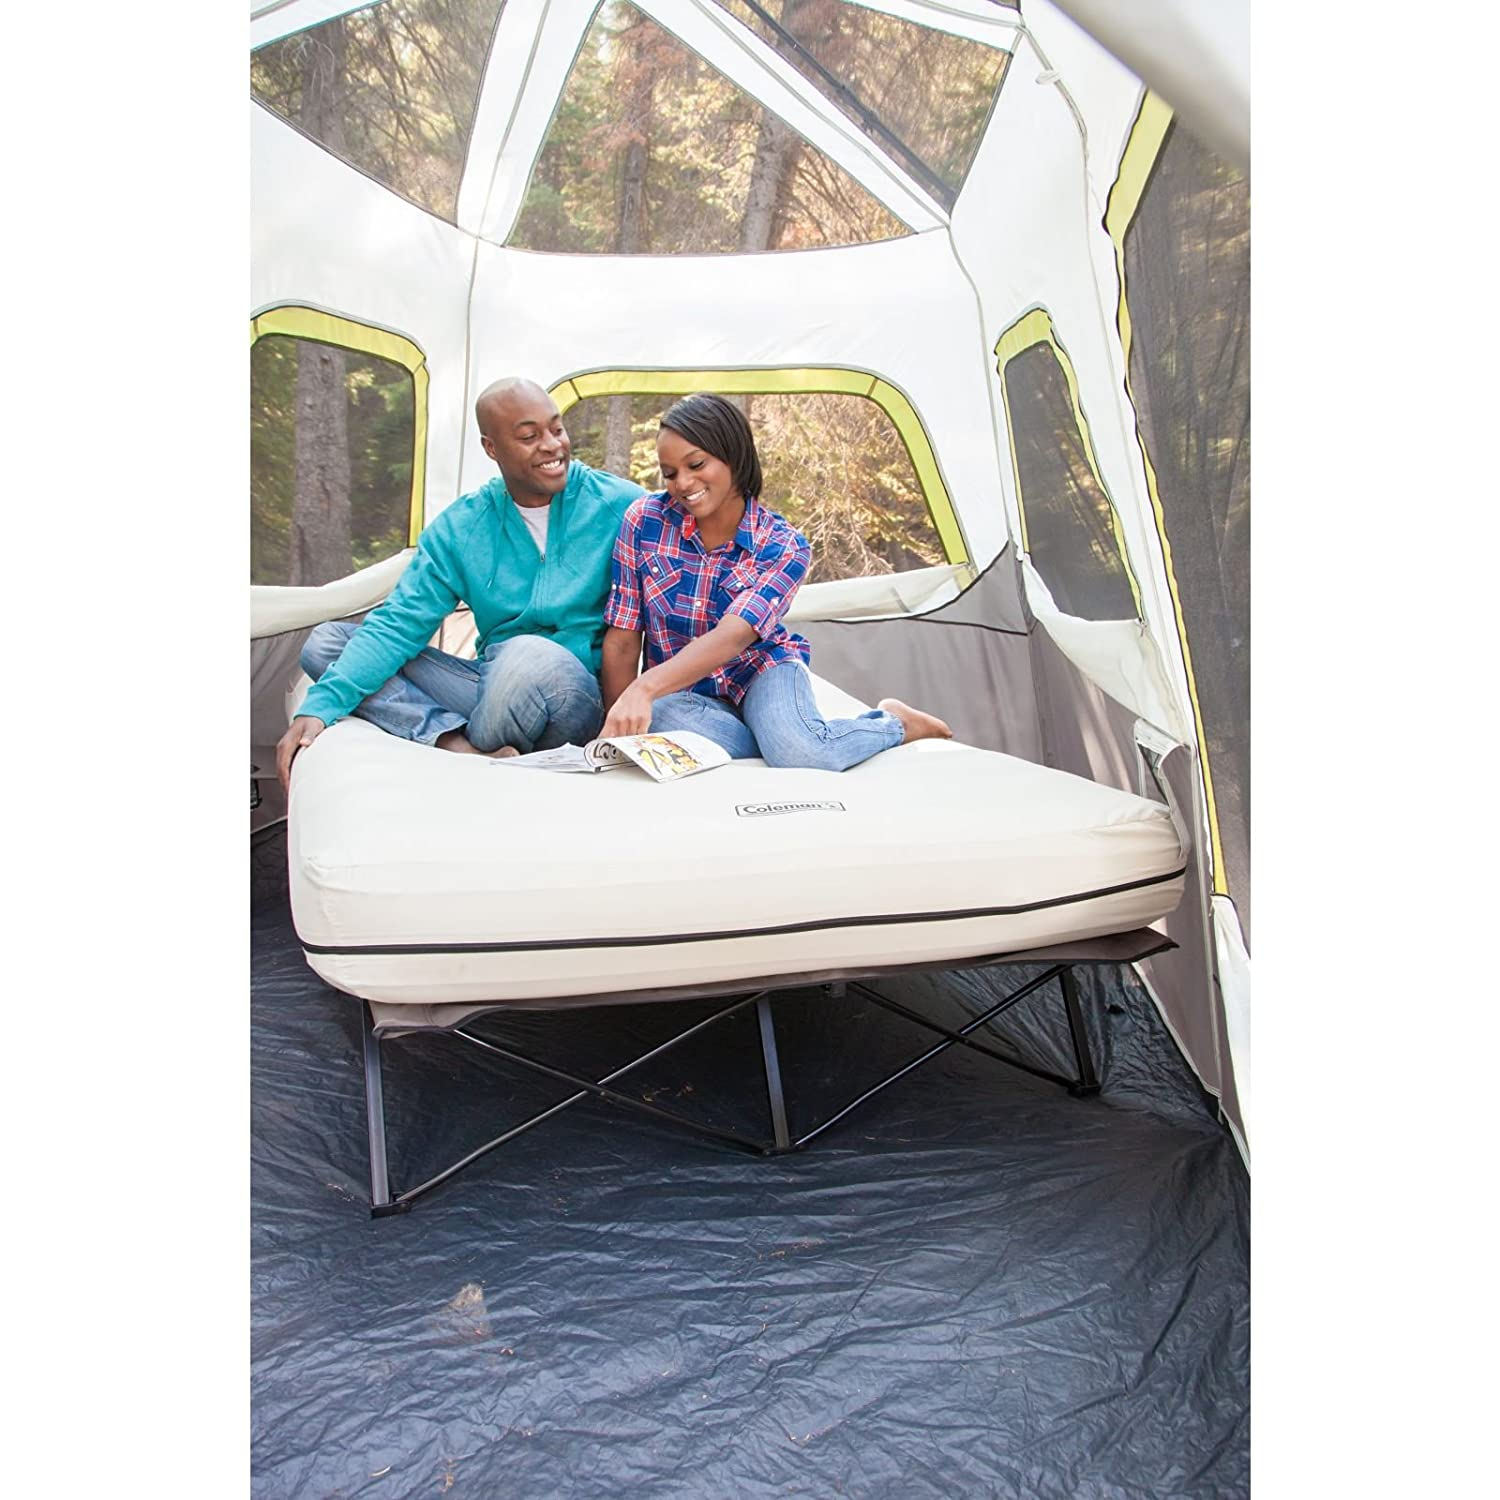 Coleman Cot Queen Framed Airbed 2000020270: Amazon.co.uk: Sports & Outdoors